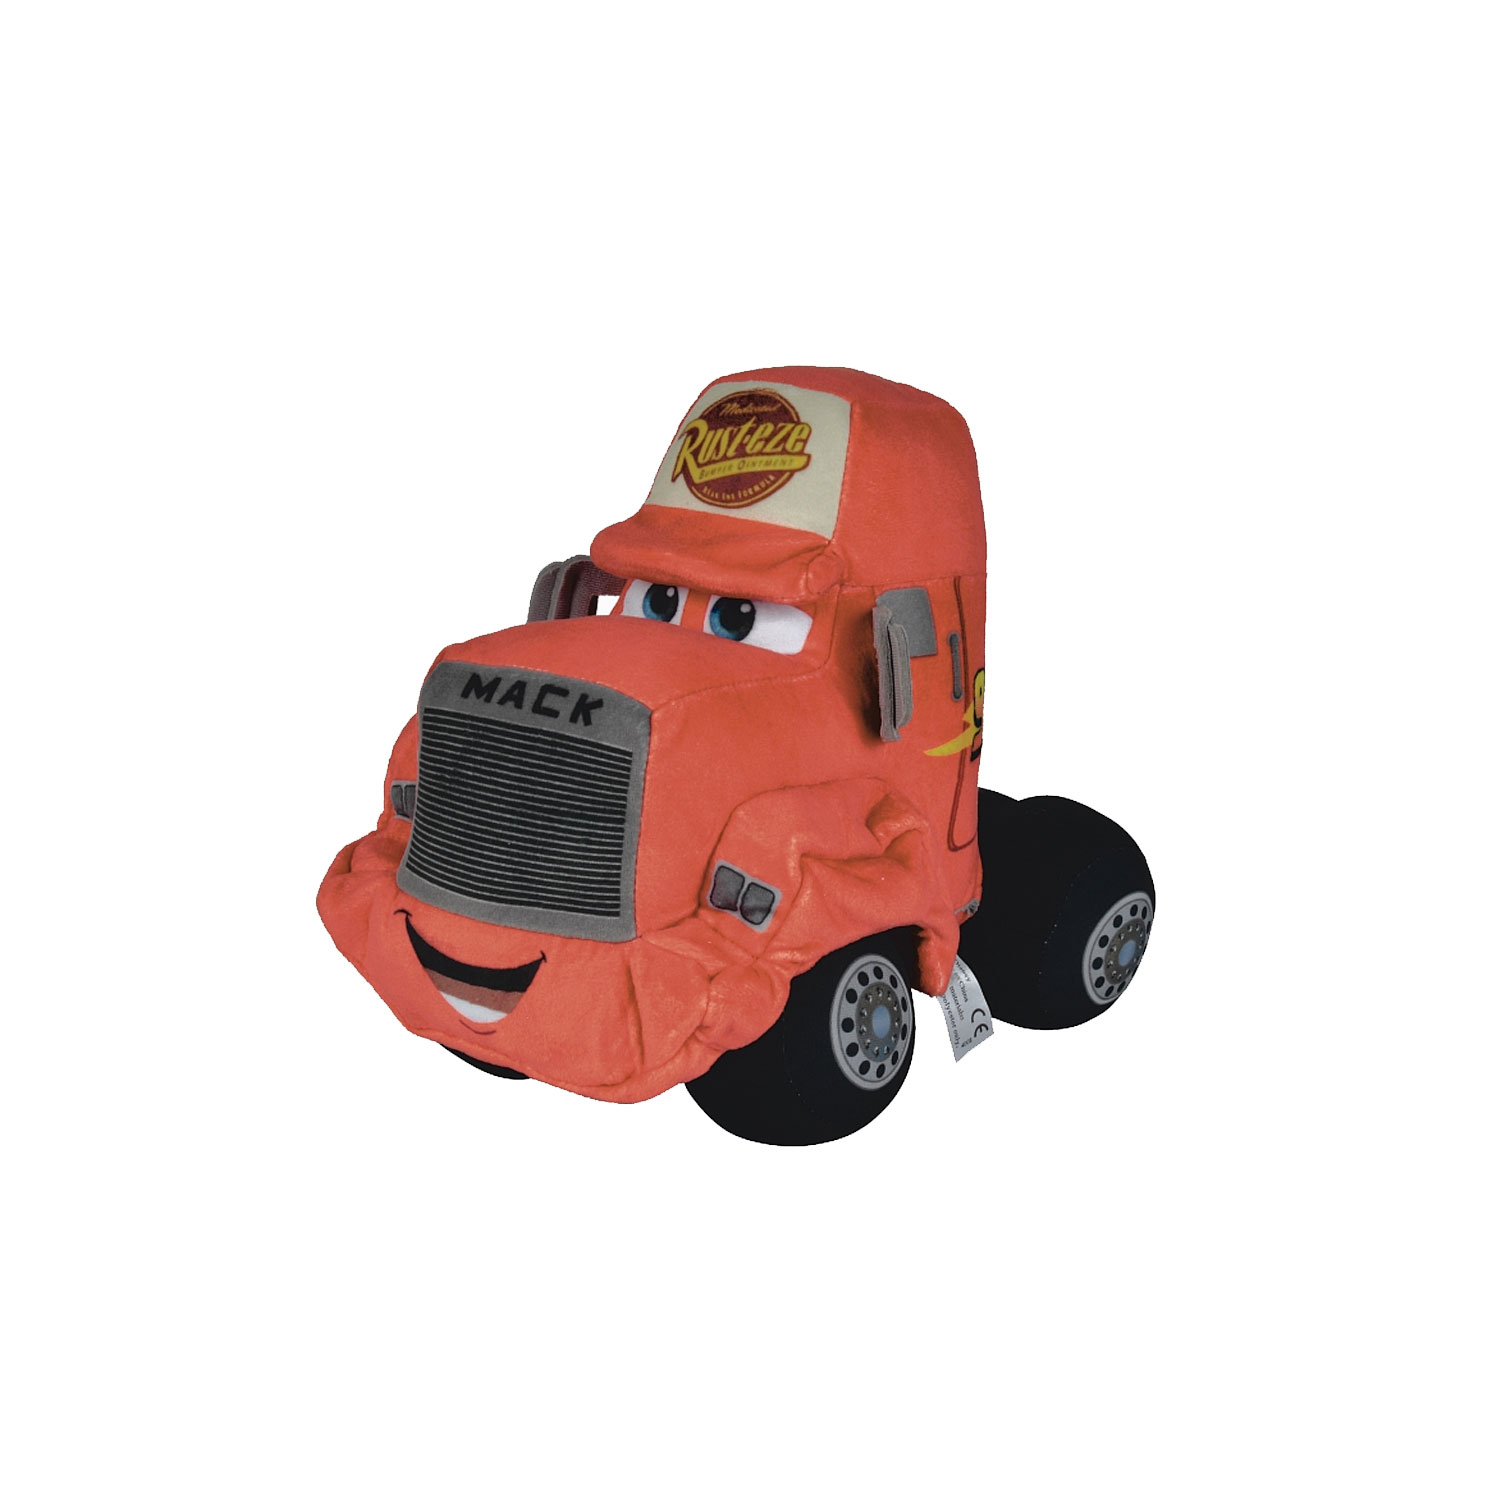 Camion Camion Cars Peluche 3Mack Cars Peluche Peluche 3Mack 3Mack Camion Cars vY76gybf